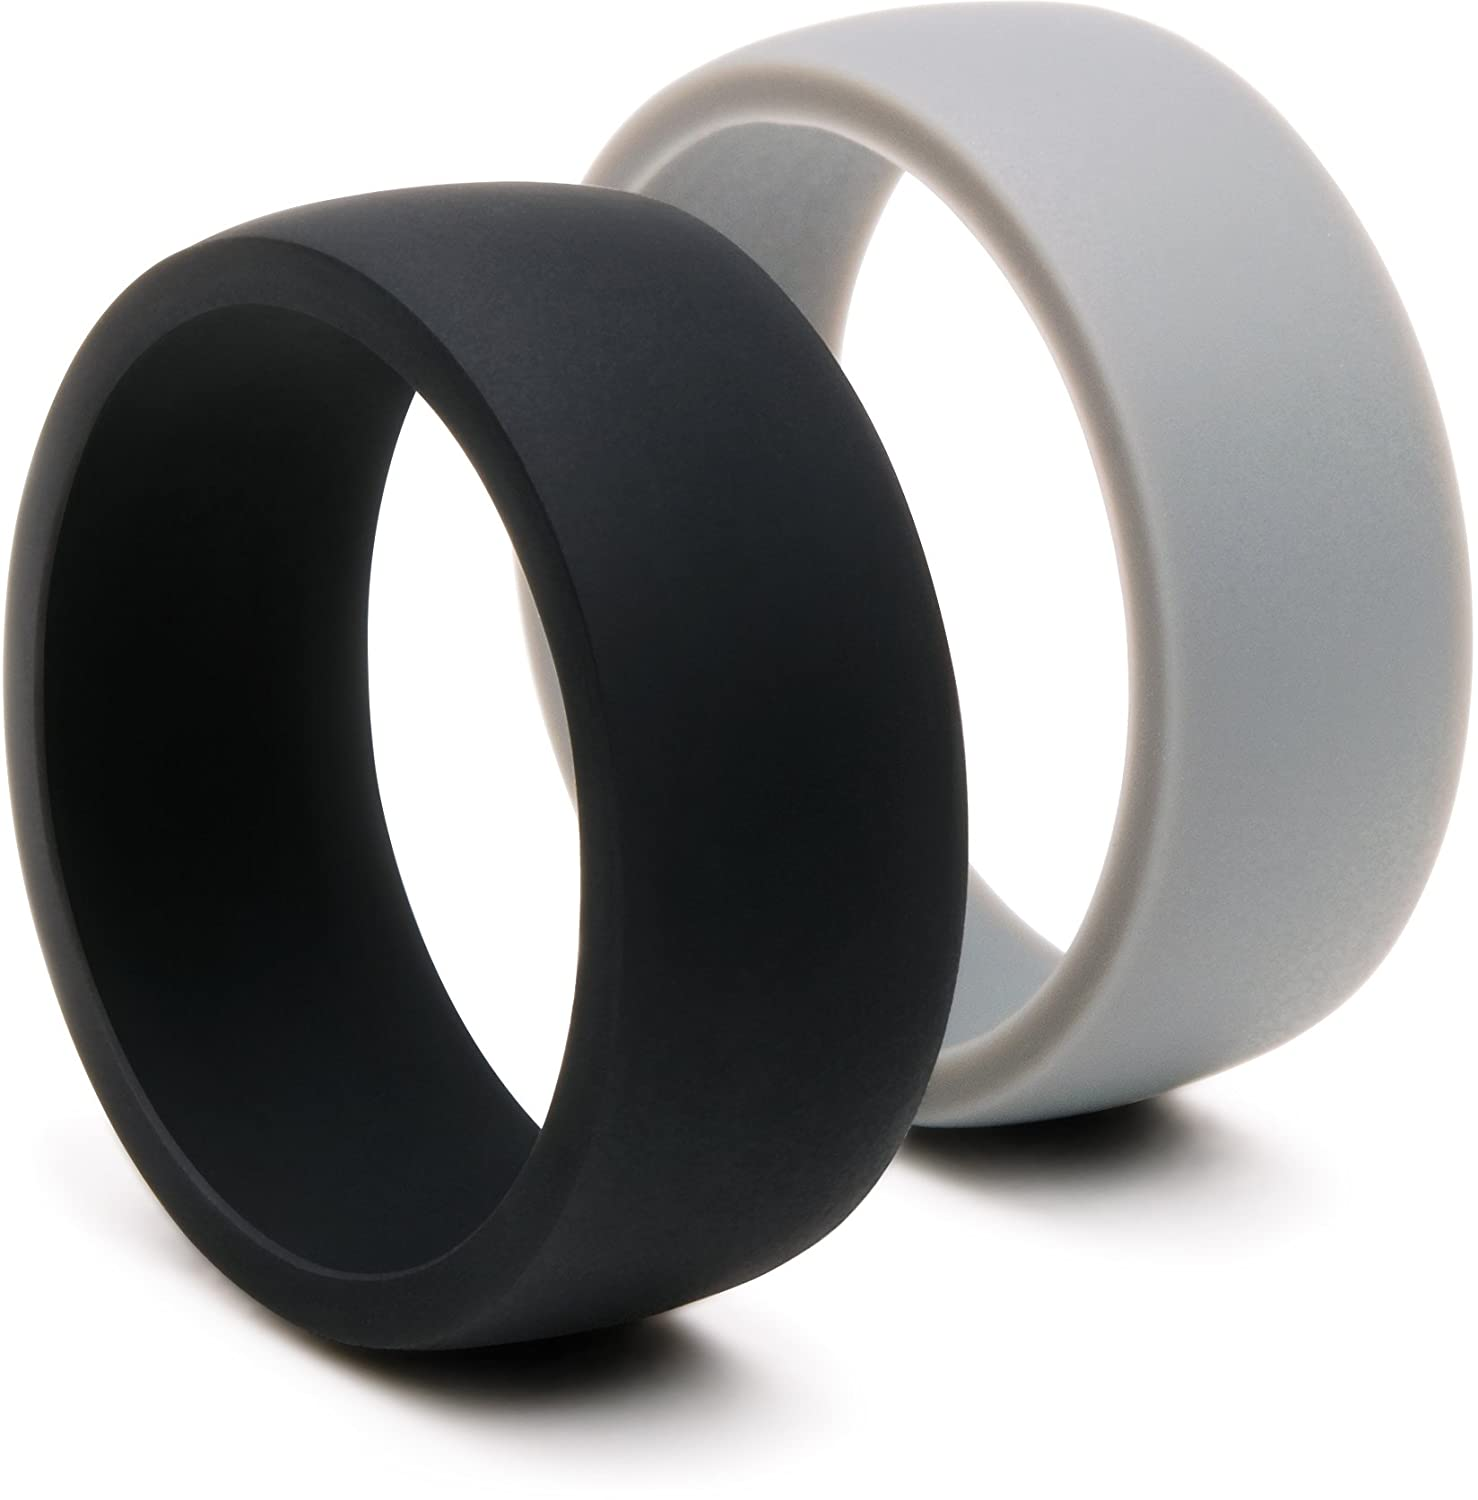 sizes instrumental offering rings and available specifications we of products pressure rubber are ganga our ac range various industries wide gangarubber in